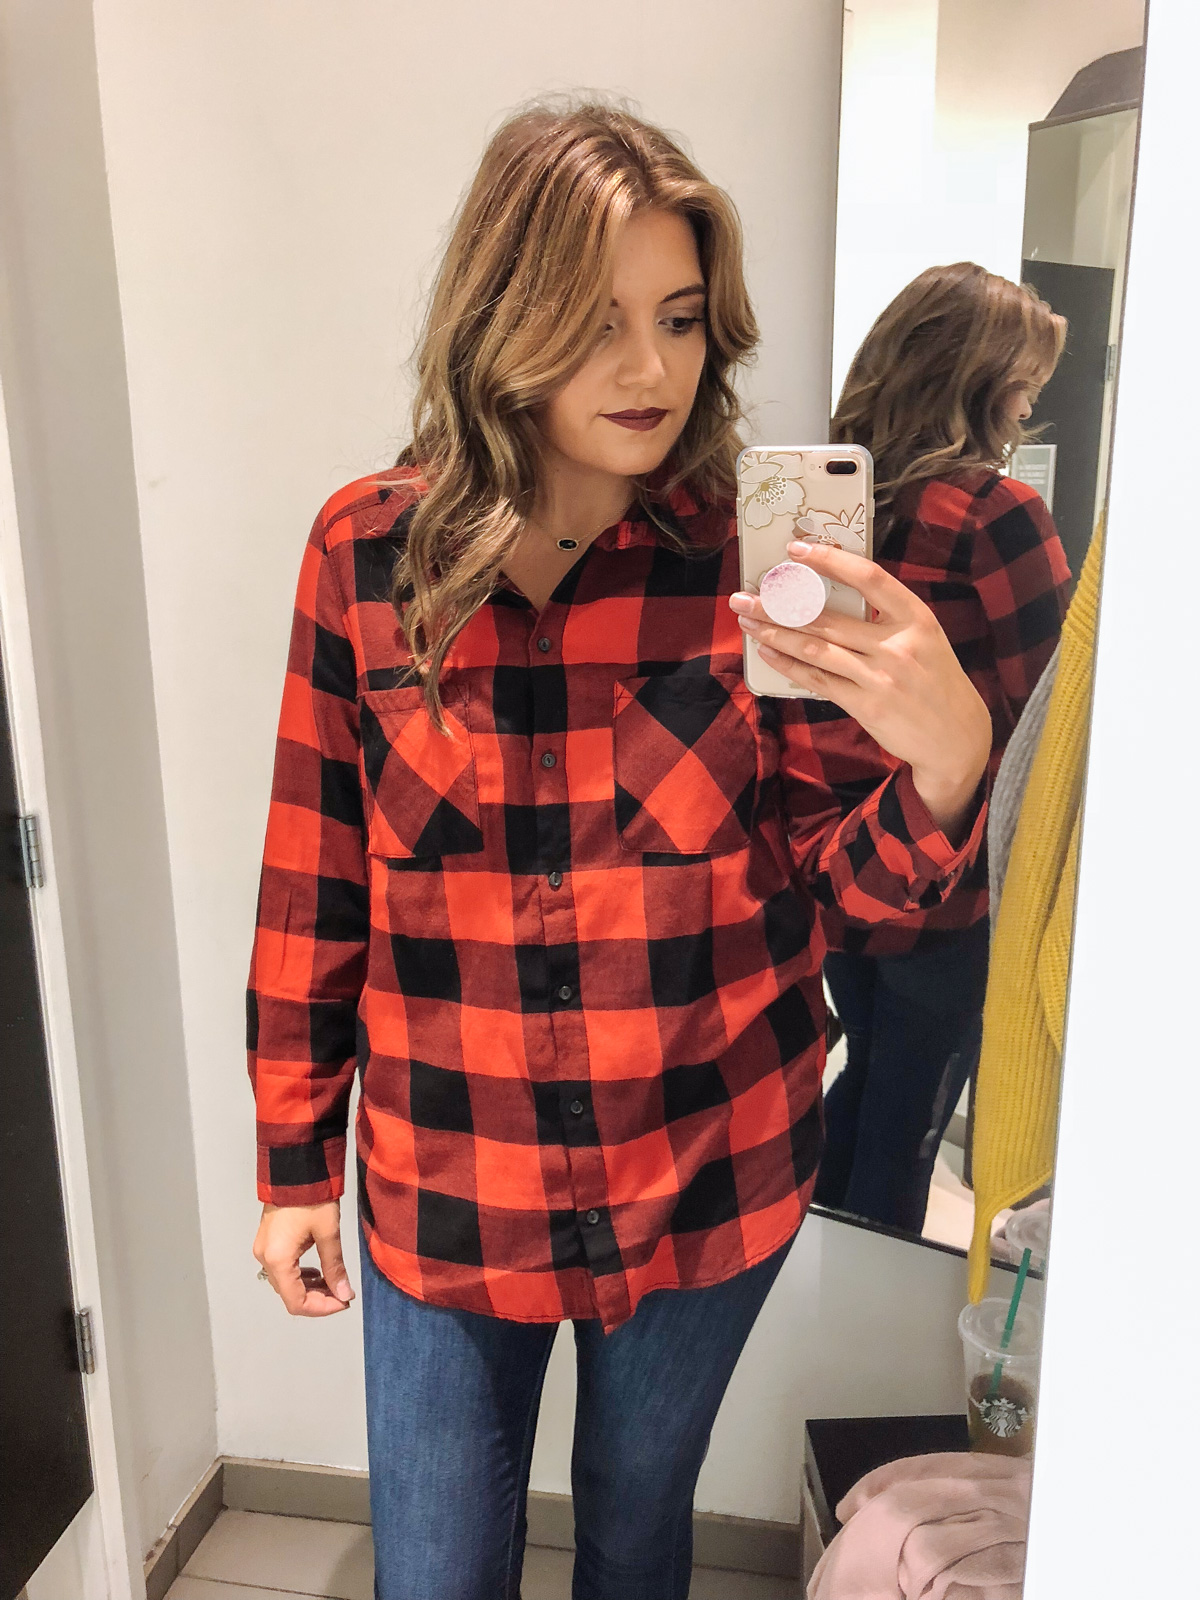 H&M fall dressing room reviews | Huge fall try-on session! See my picks from Nordstrom, Shopbop, Loft, and H&M! bylaurenm.com